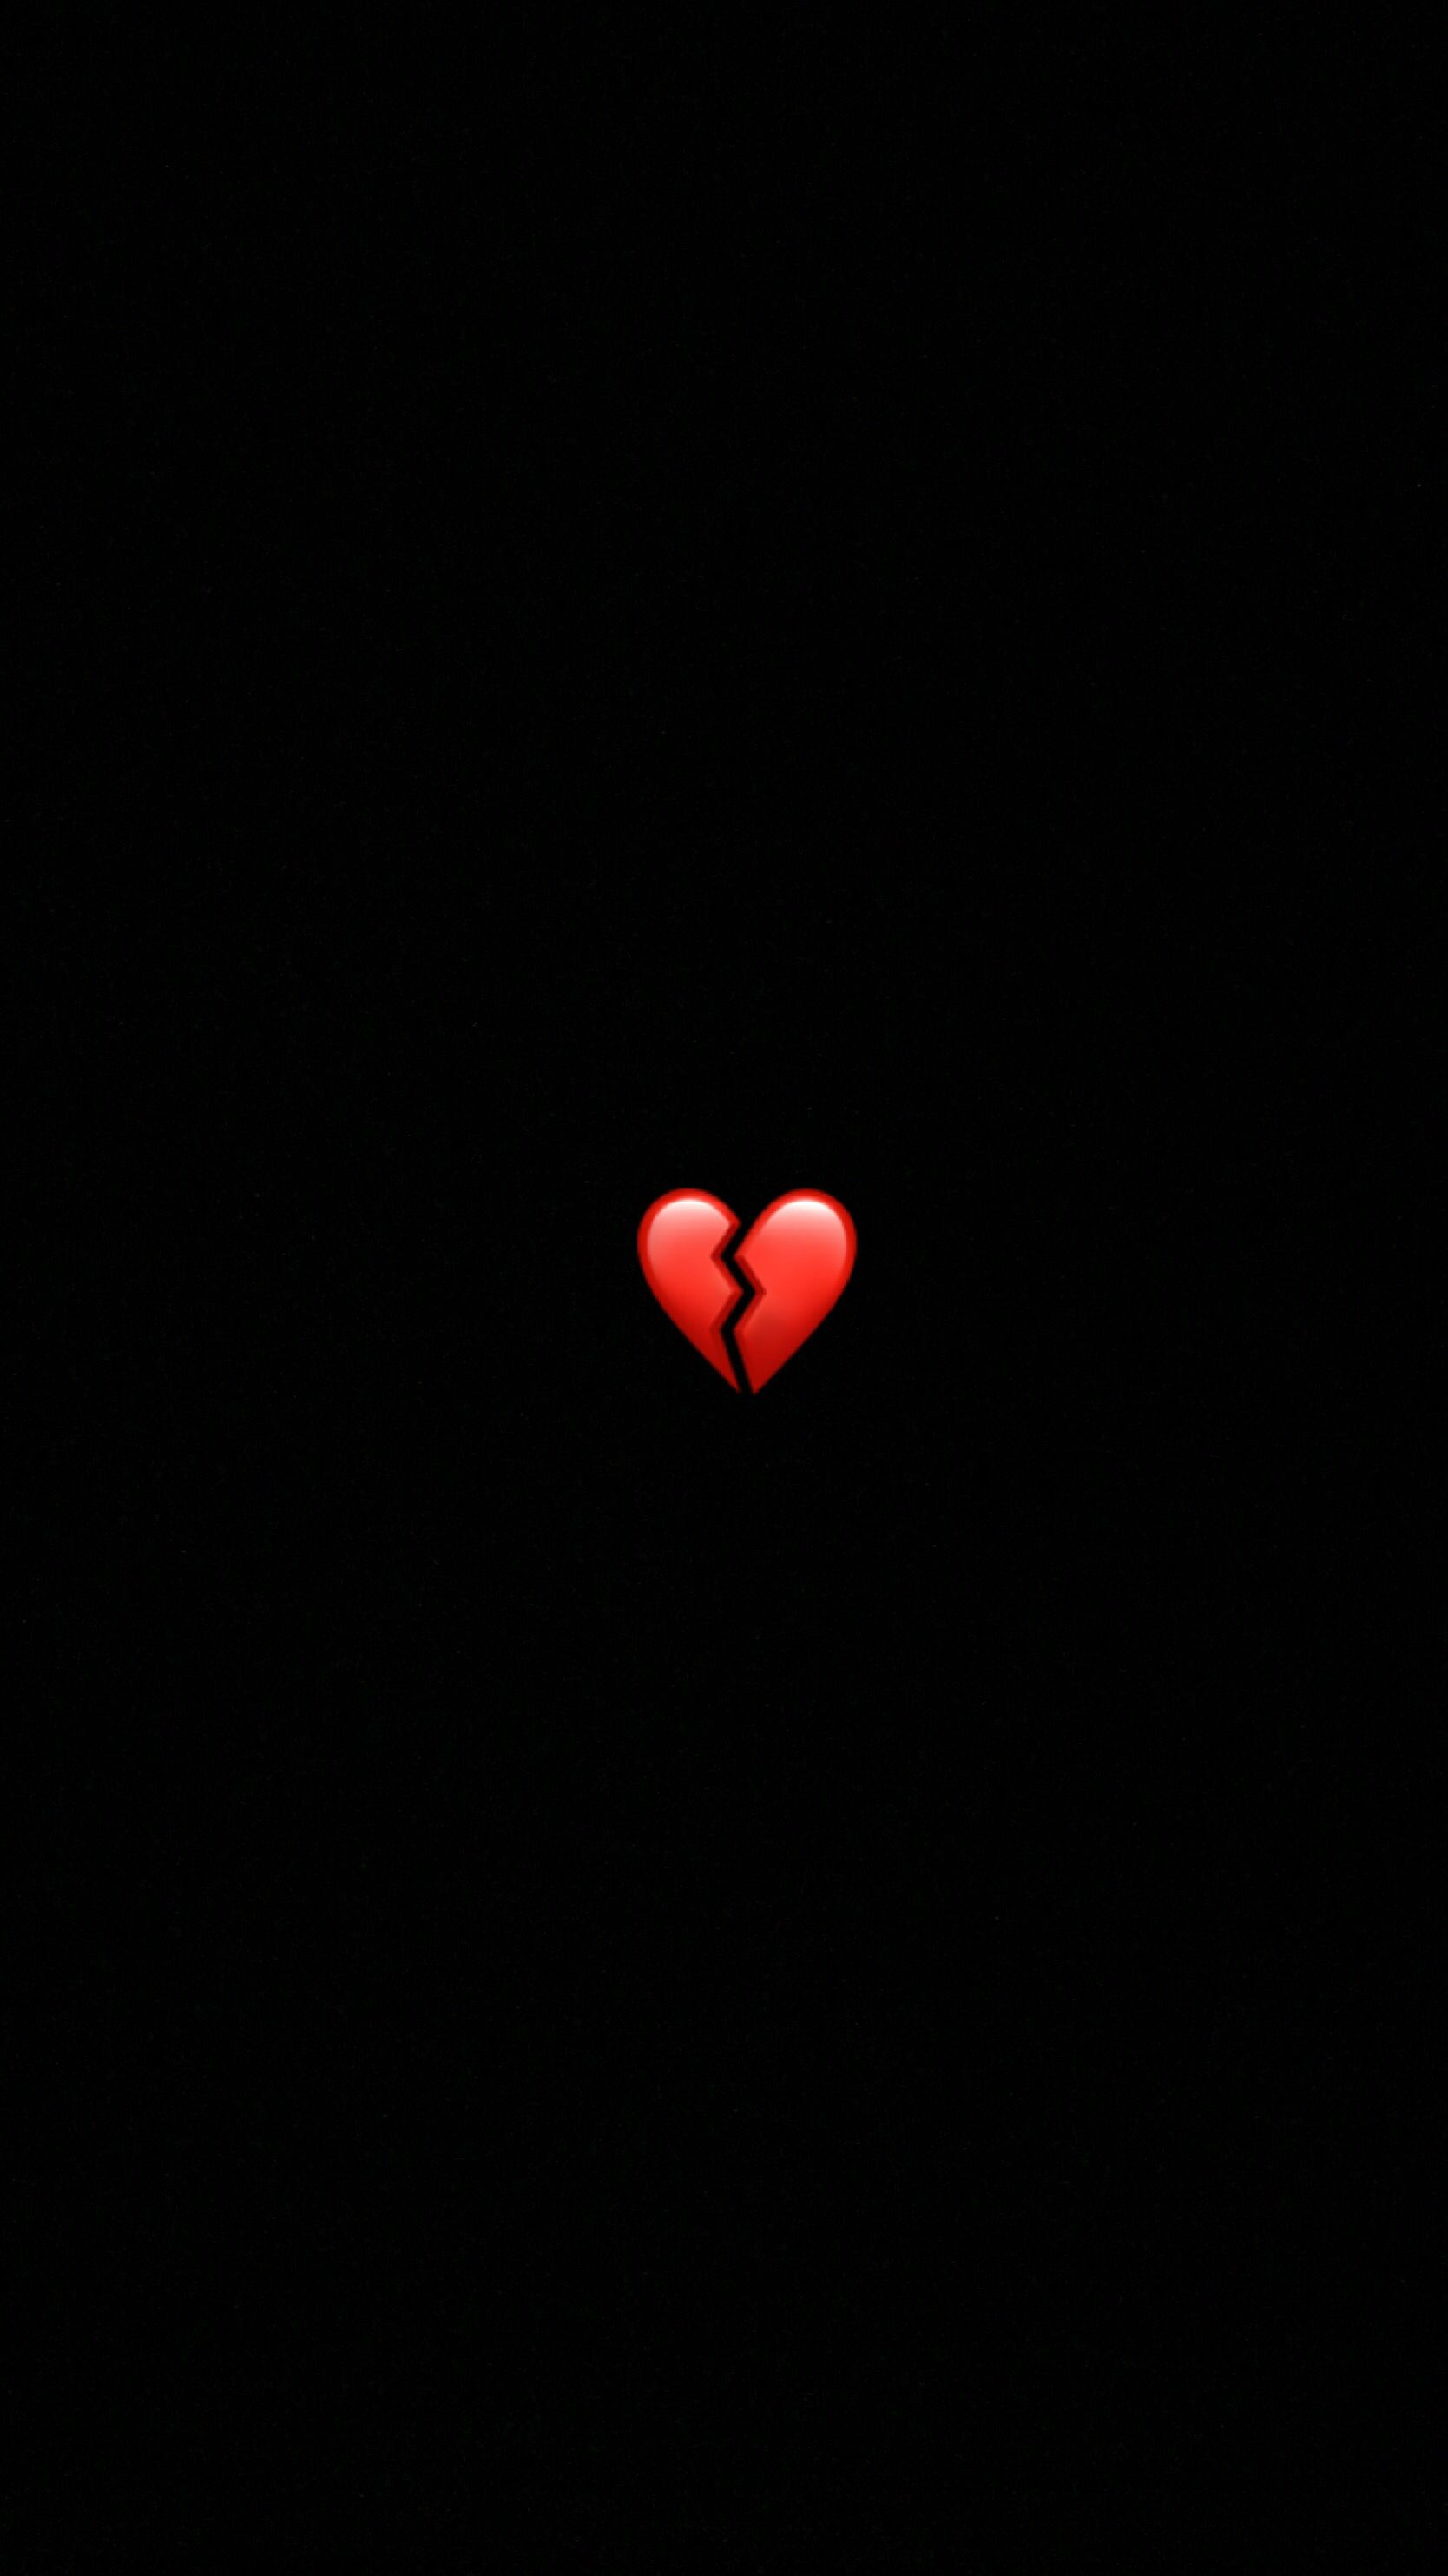 Just A Broken Heart Broken Heart Wallpaper Heart Wallpaper Emoji Backgrounds